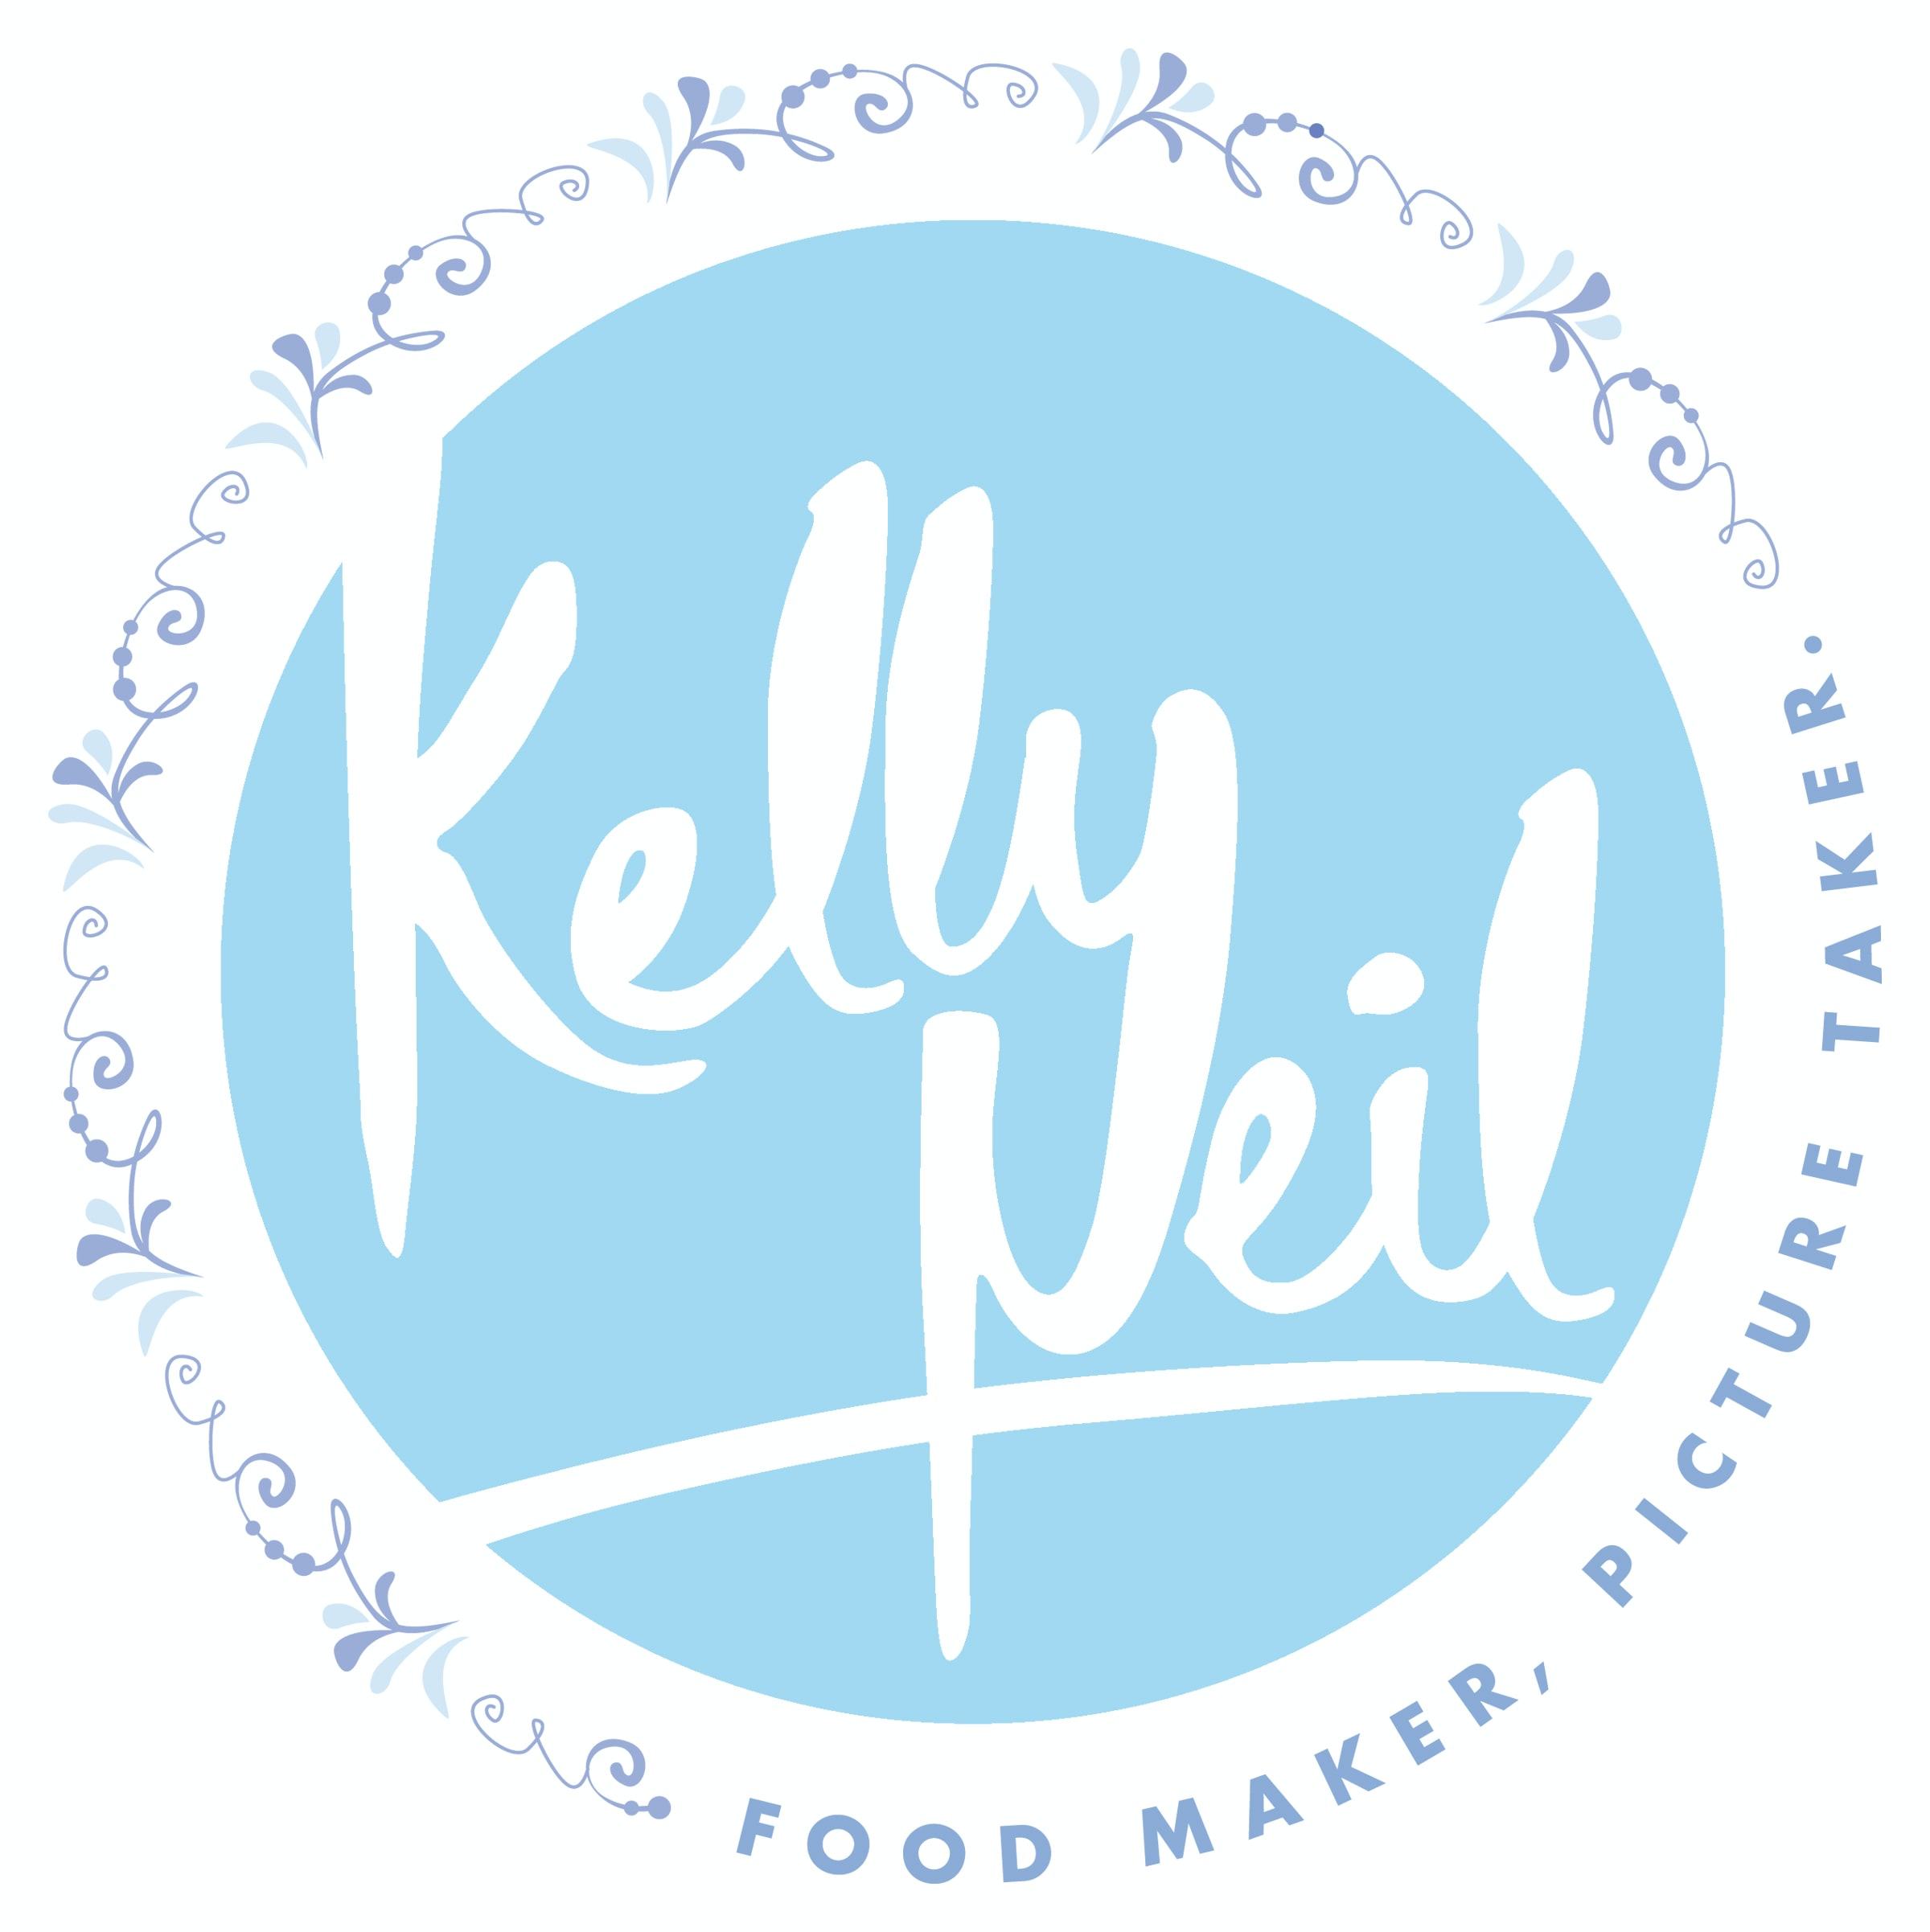 Go to Kelly Neil's profile